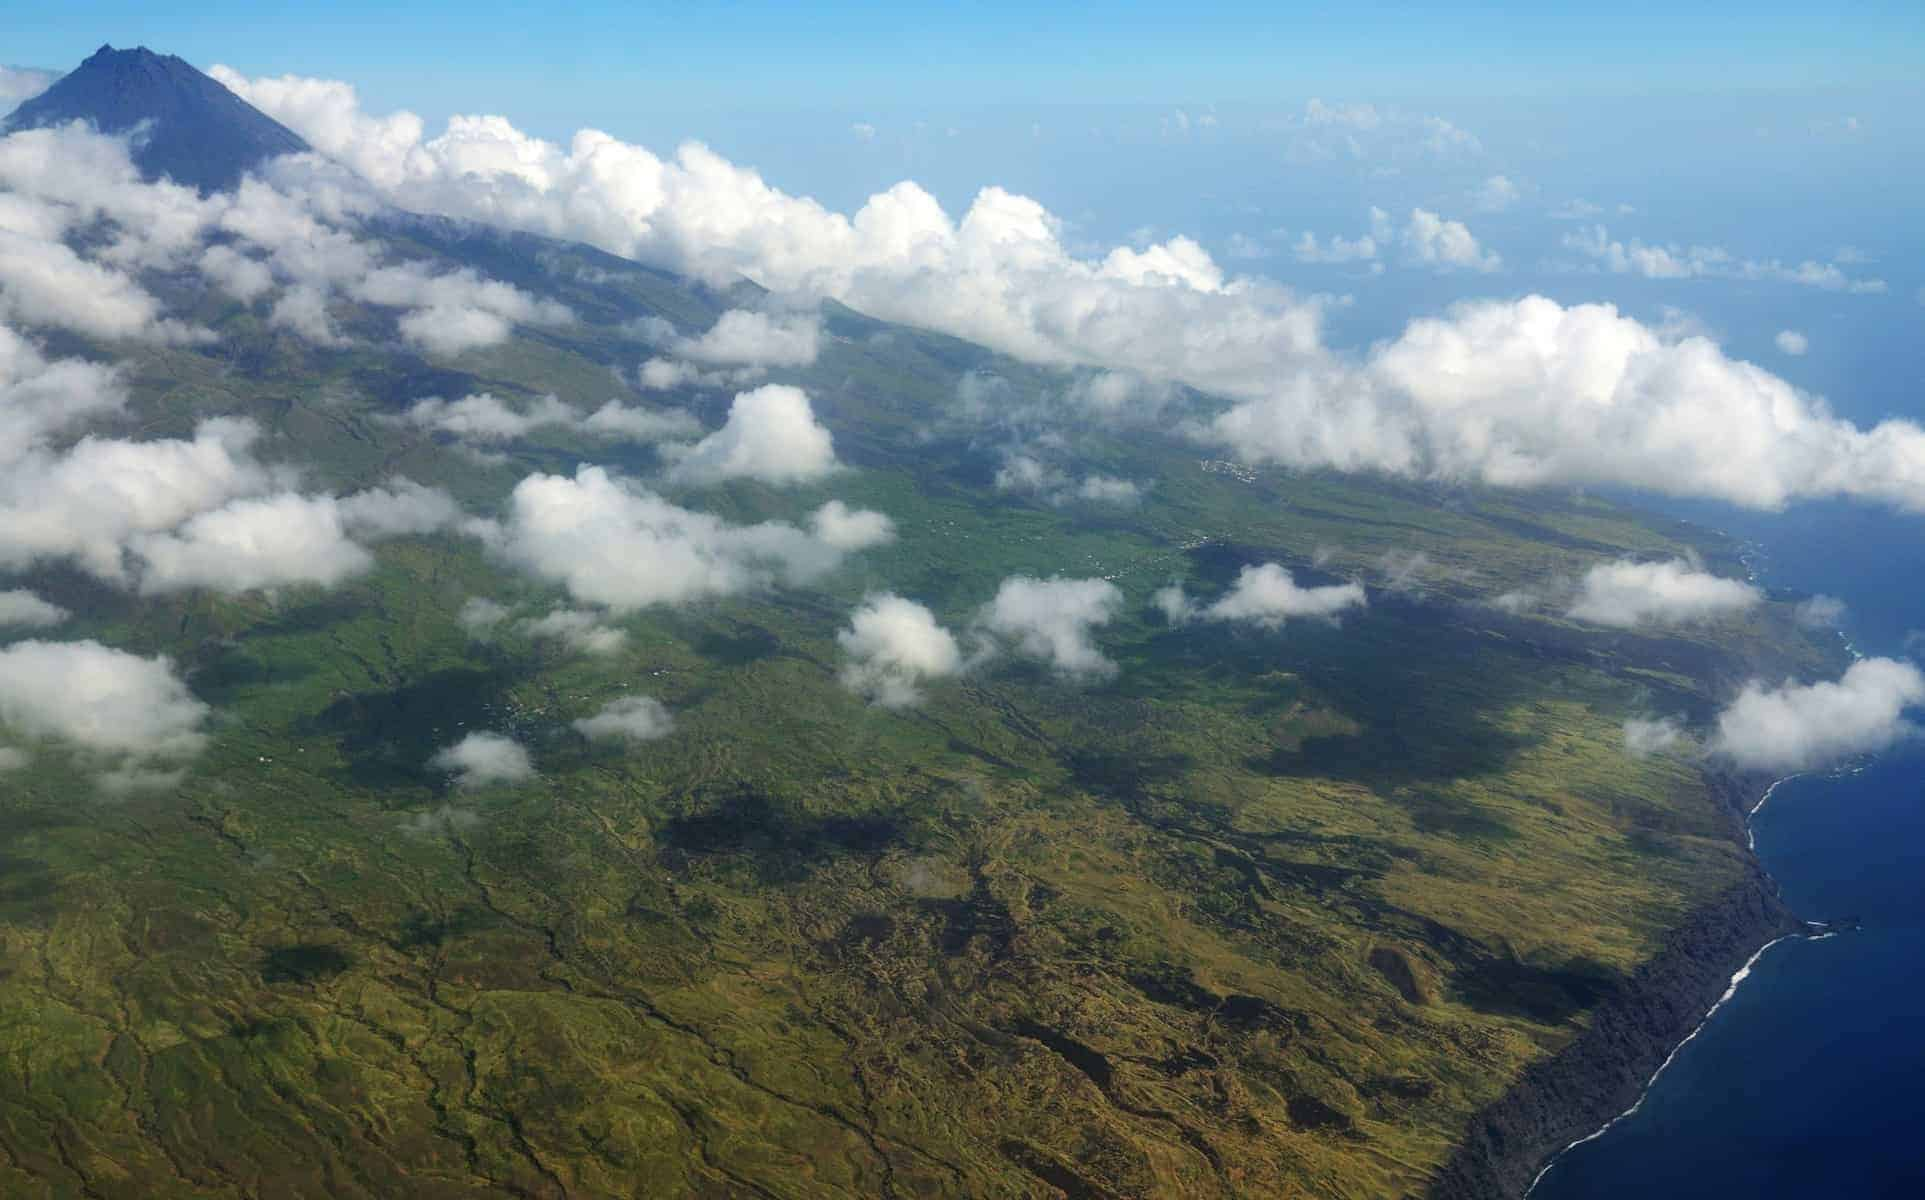 The island of Fogo, in Cabo Verde c0vered by white puffy clouds, as seen from aerial view on departure